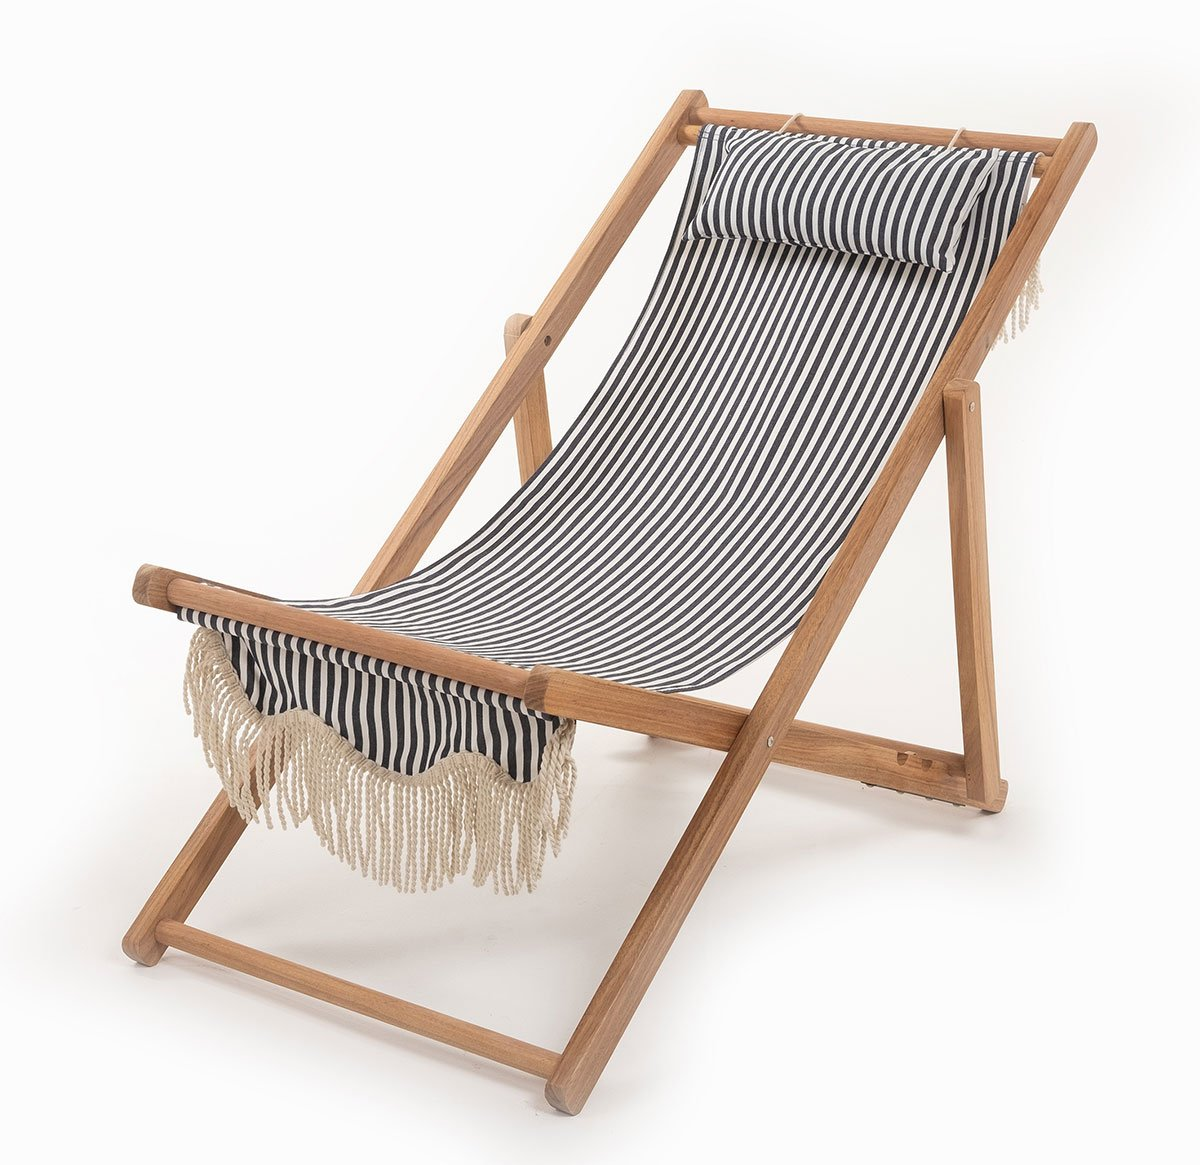 Sling Chair - Lauren's Navy Stripe